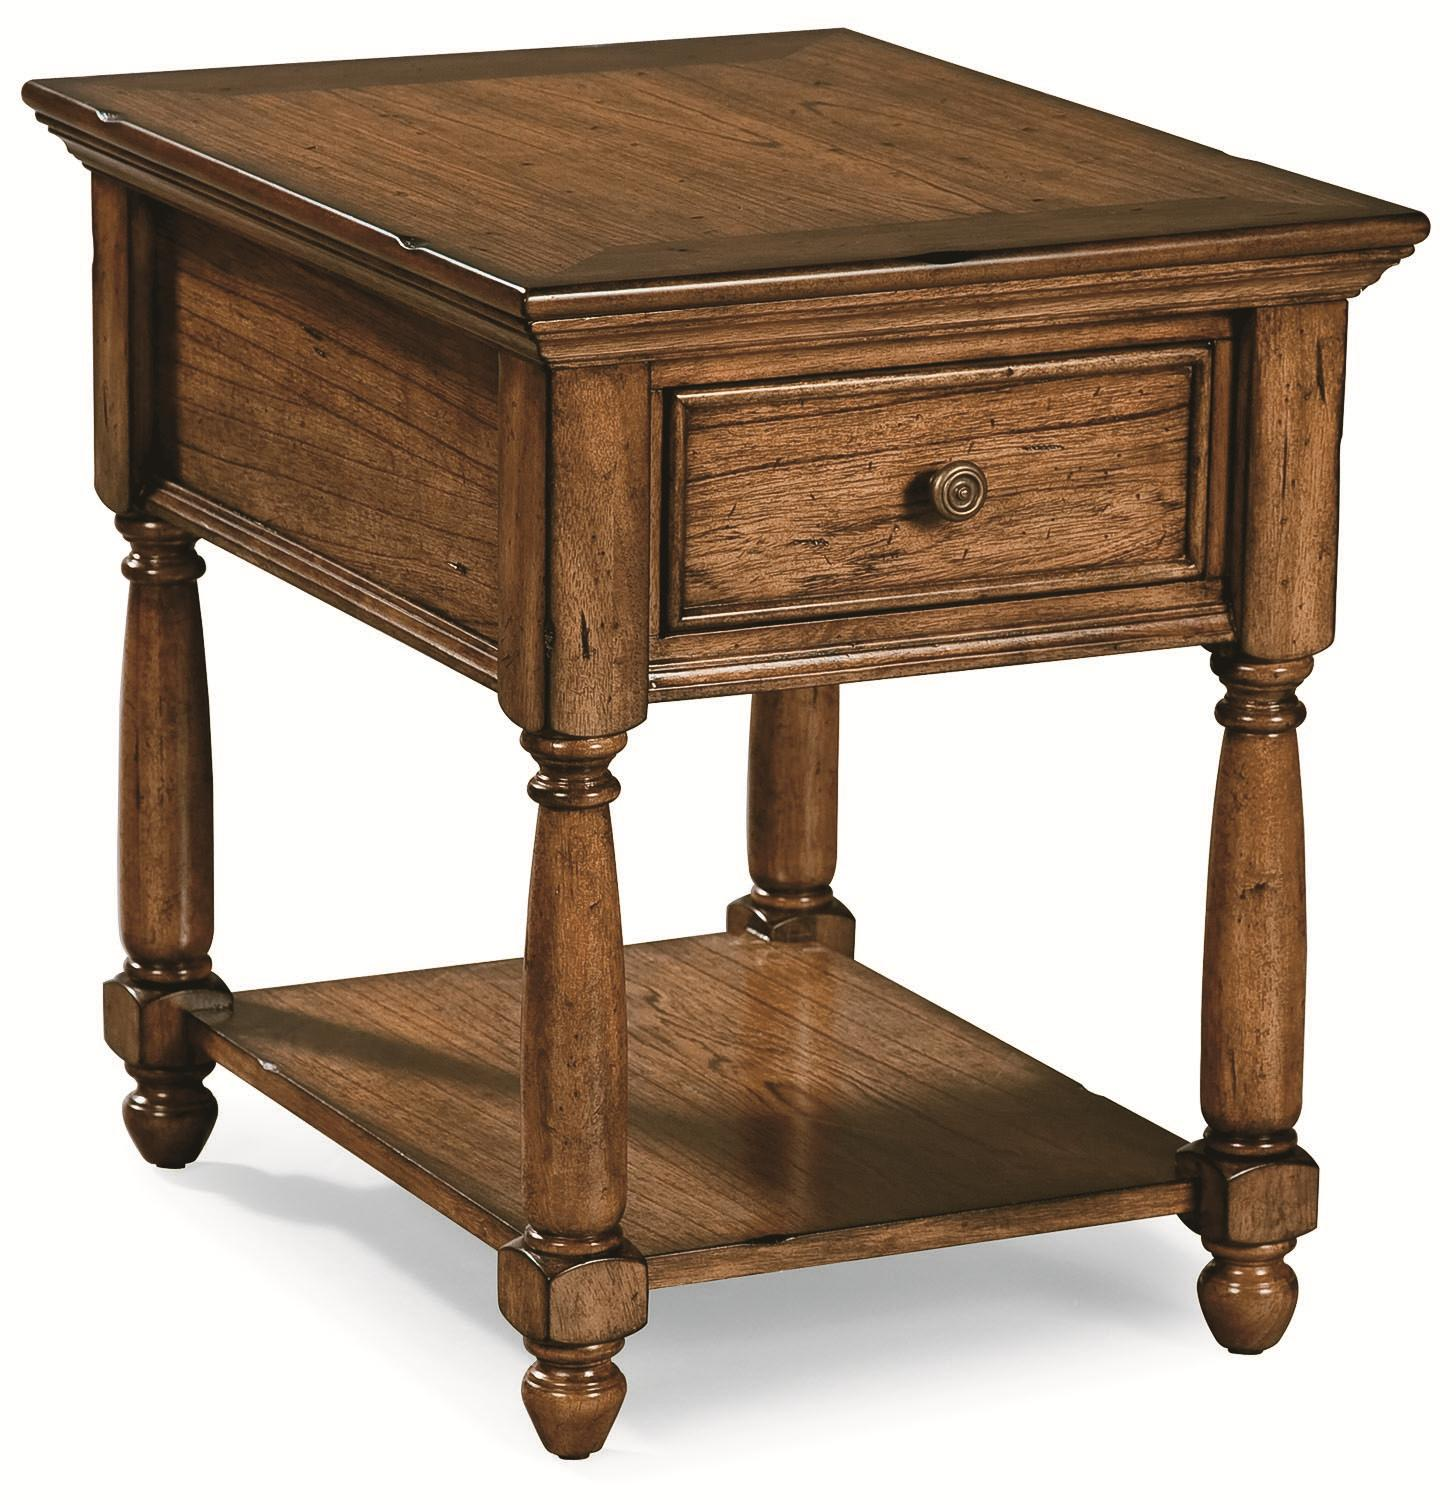 Peters Revington Briarwood End Table With Drawer U0026 Shelf | Westrich  Furniture U0026 Appliances | End Tables